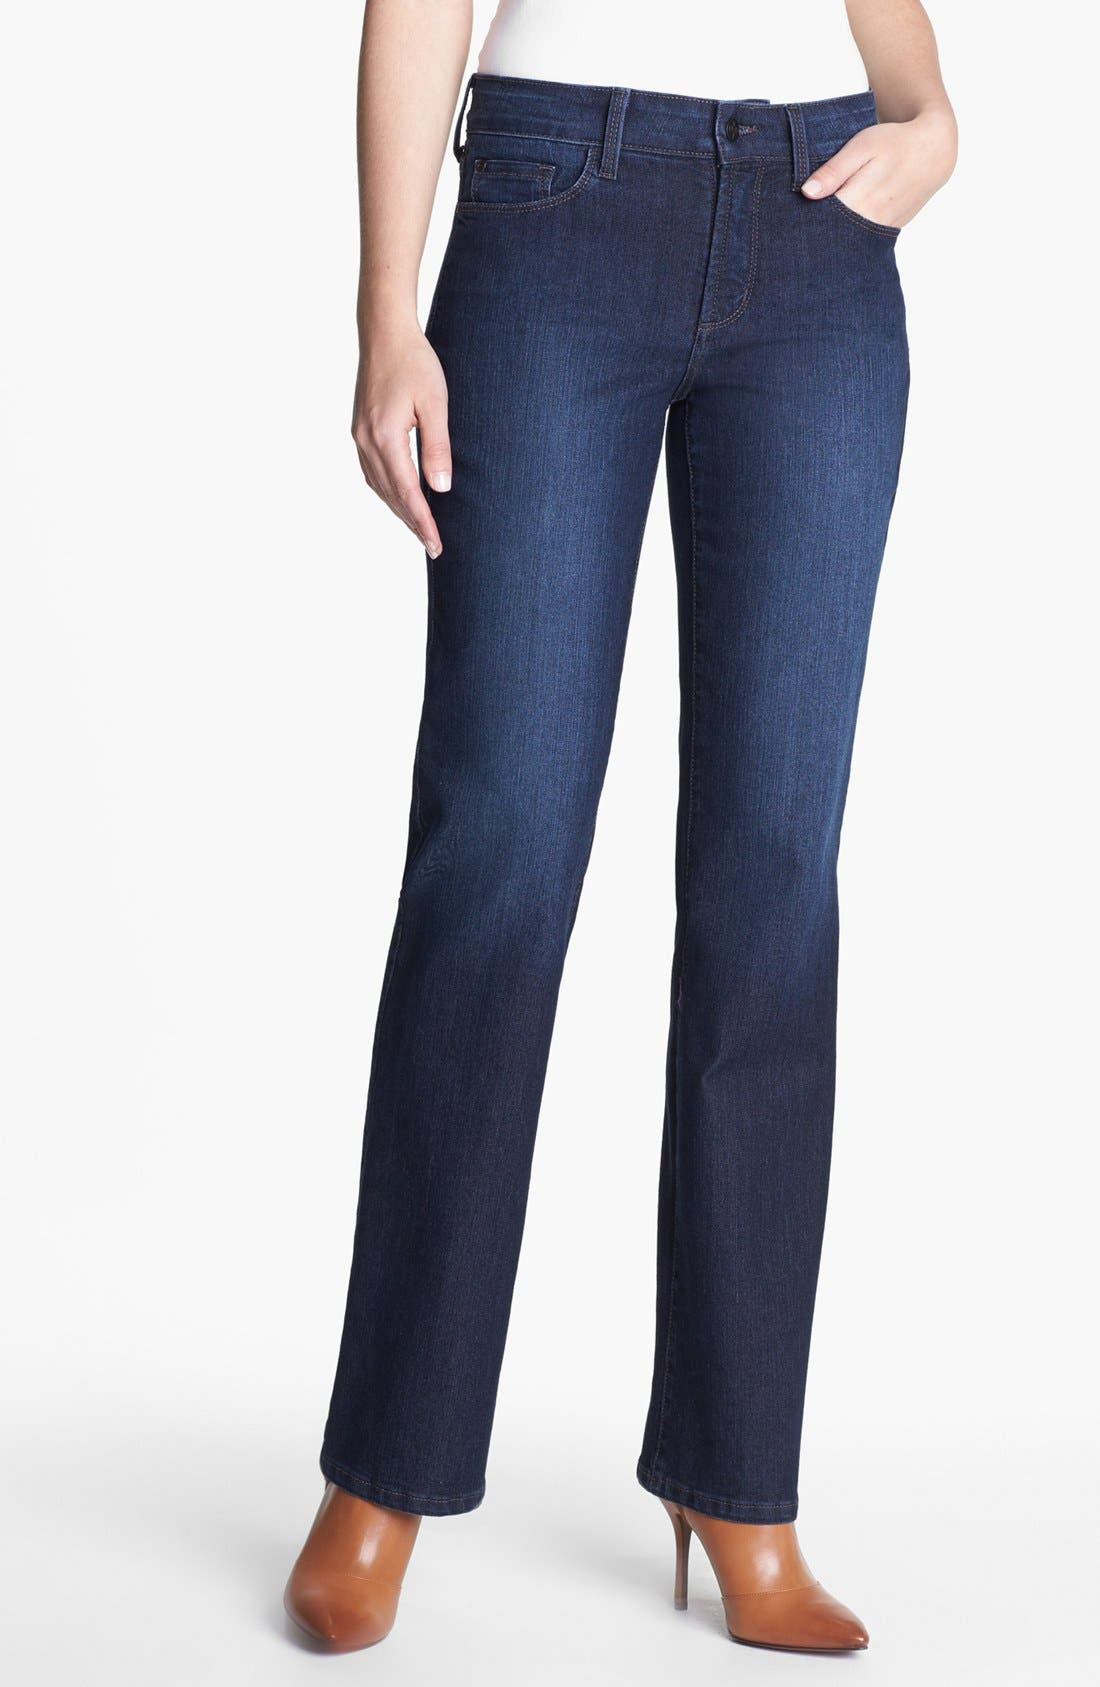 Main Image - NYDJ 'Barbara' Embellished Stretch Bootcut Jeans (Online Only)